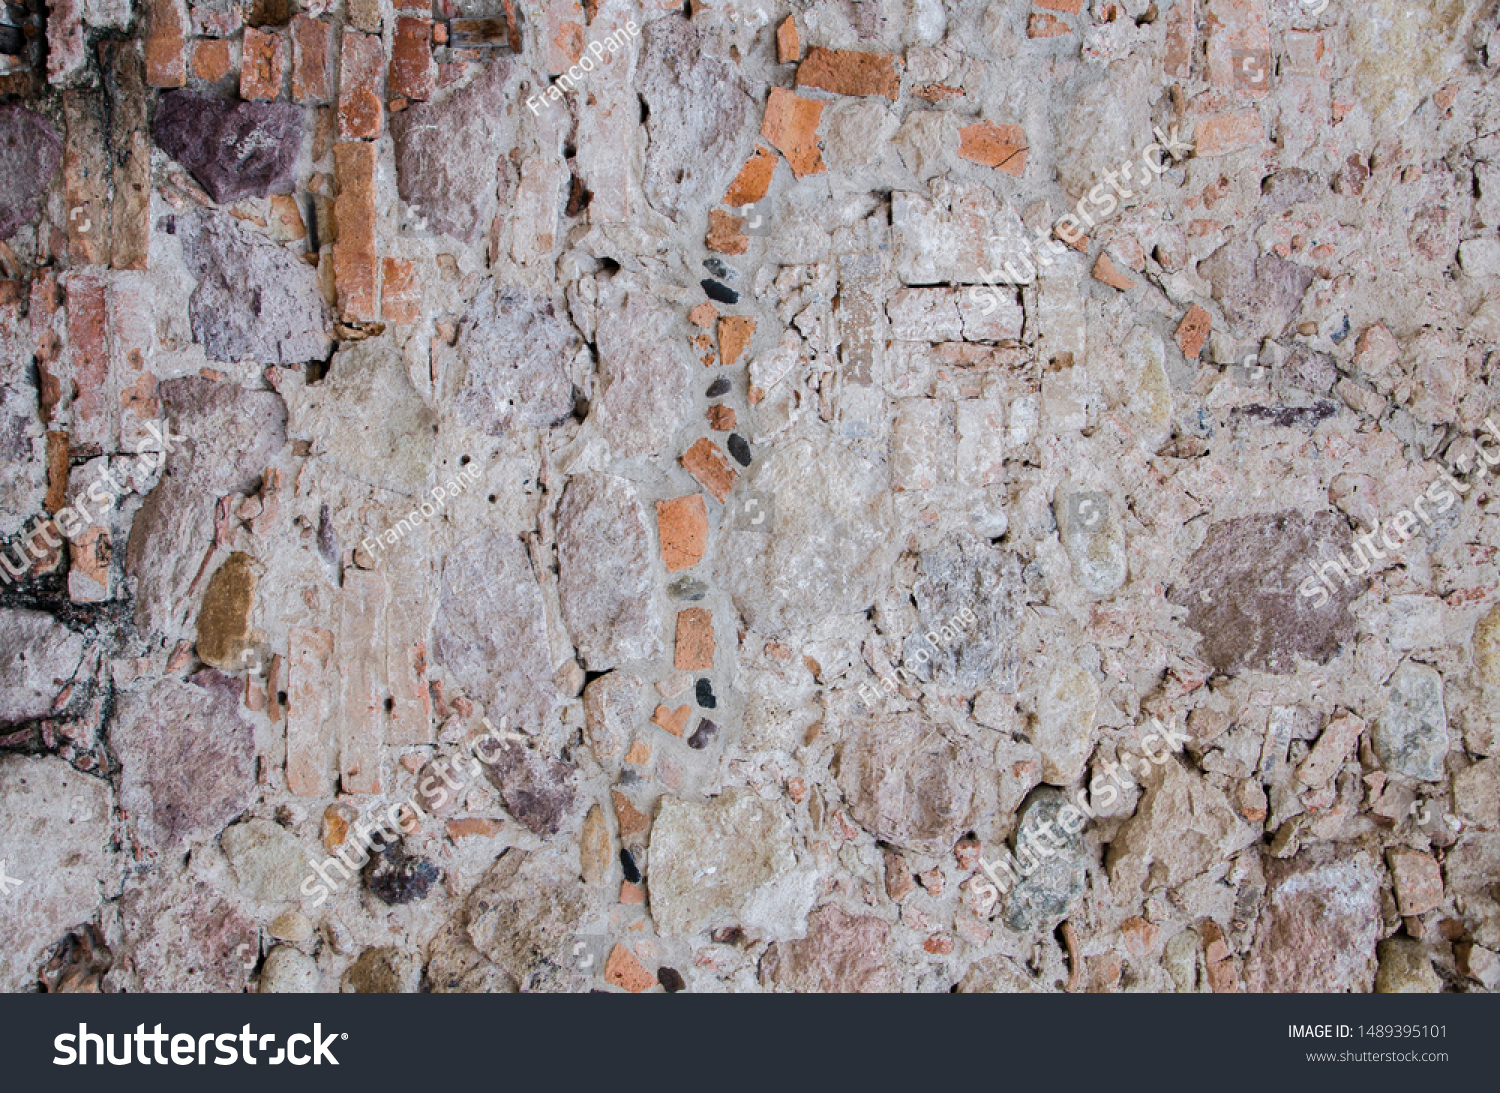 stone concrete and brick wall texture #1489395101